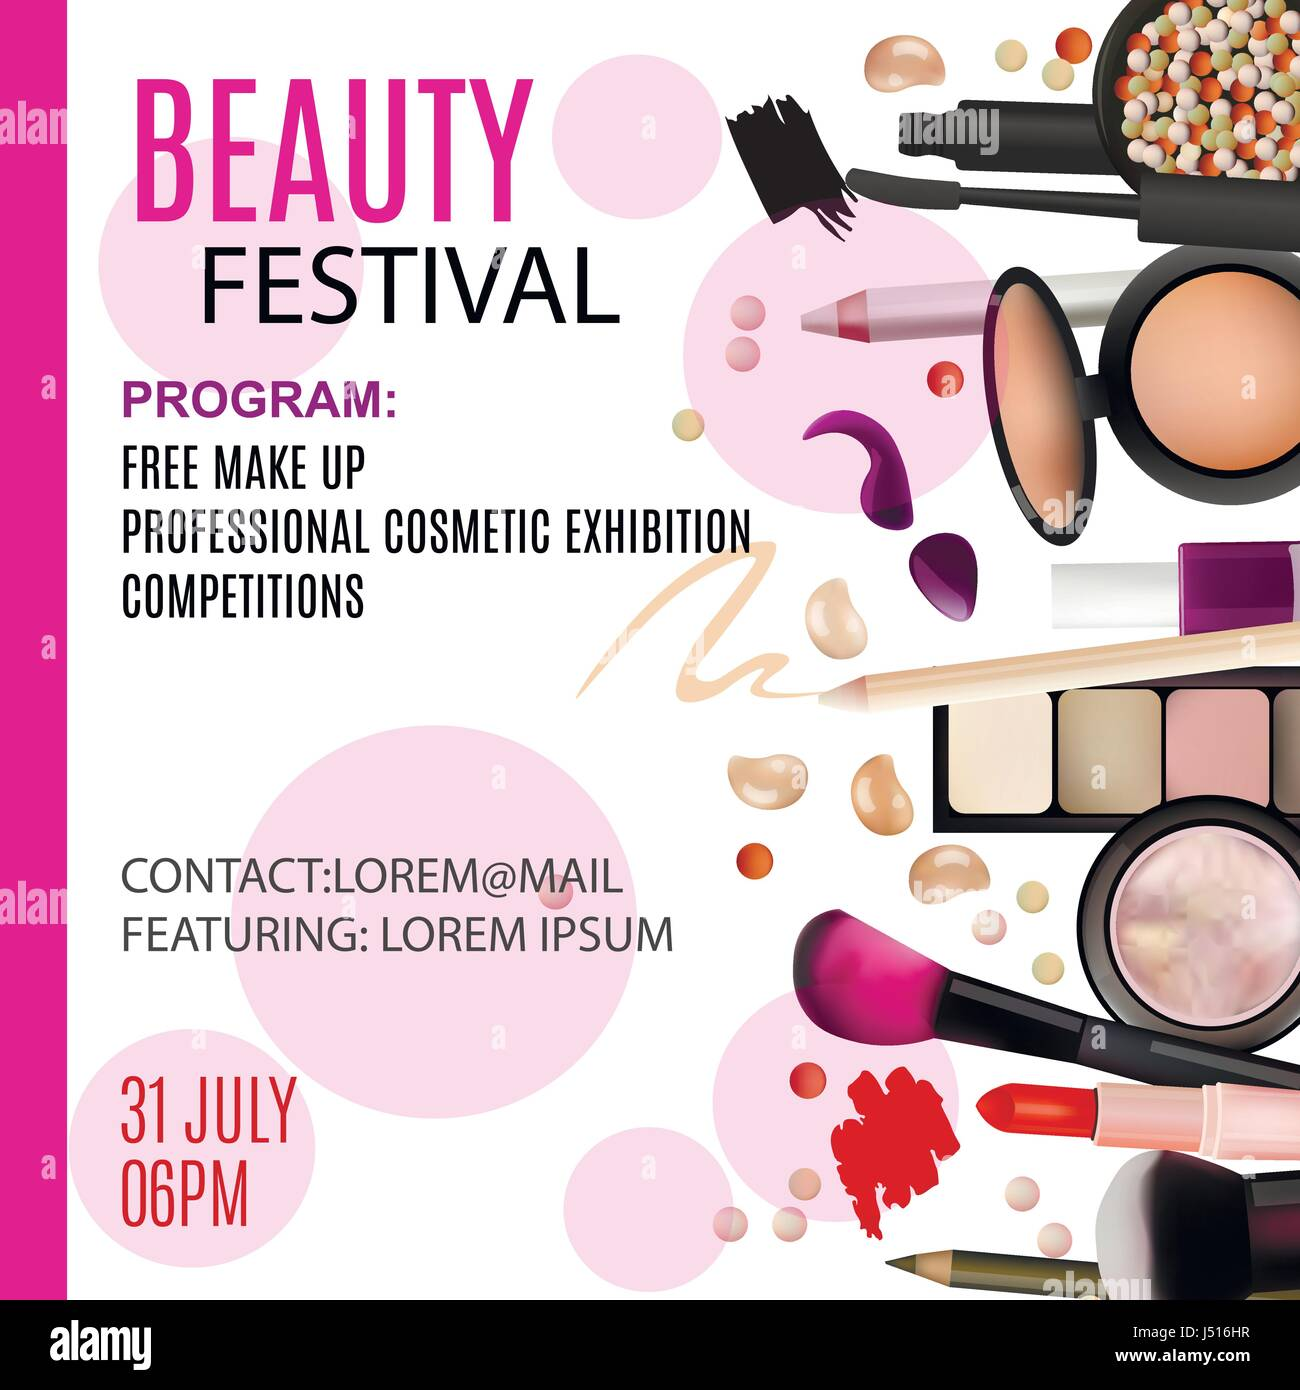 Beauty Festival Poster Design Cosmetic Products Professional Make Stock Vector Image Art Alamy